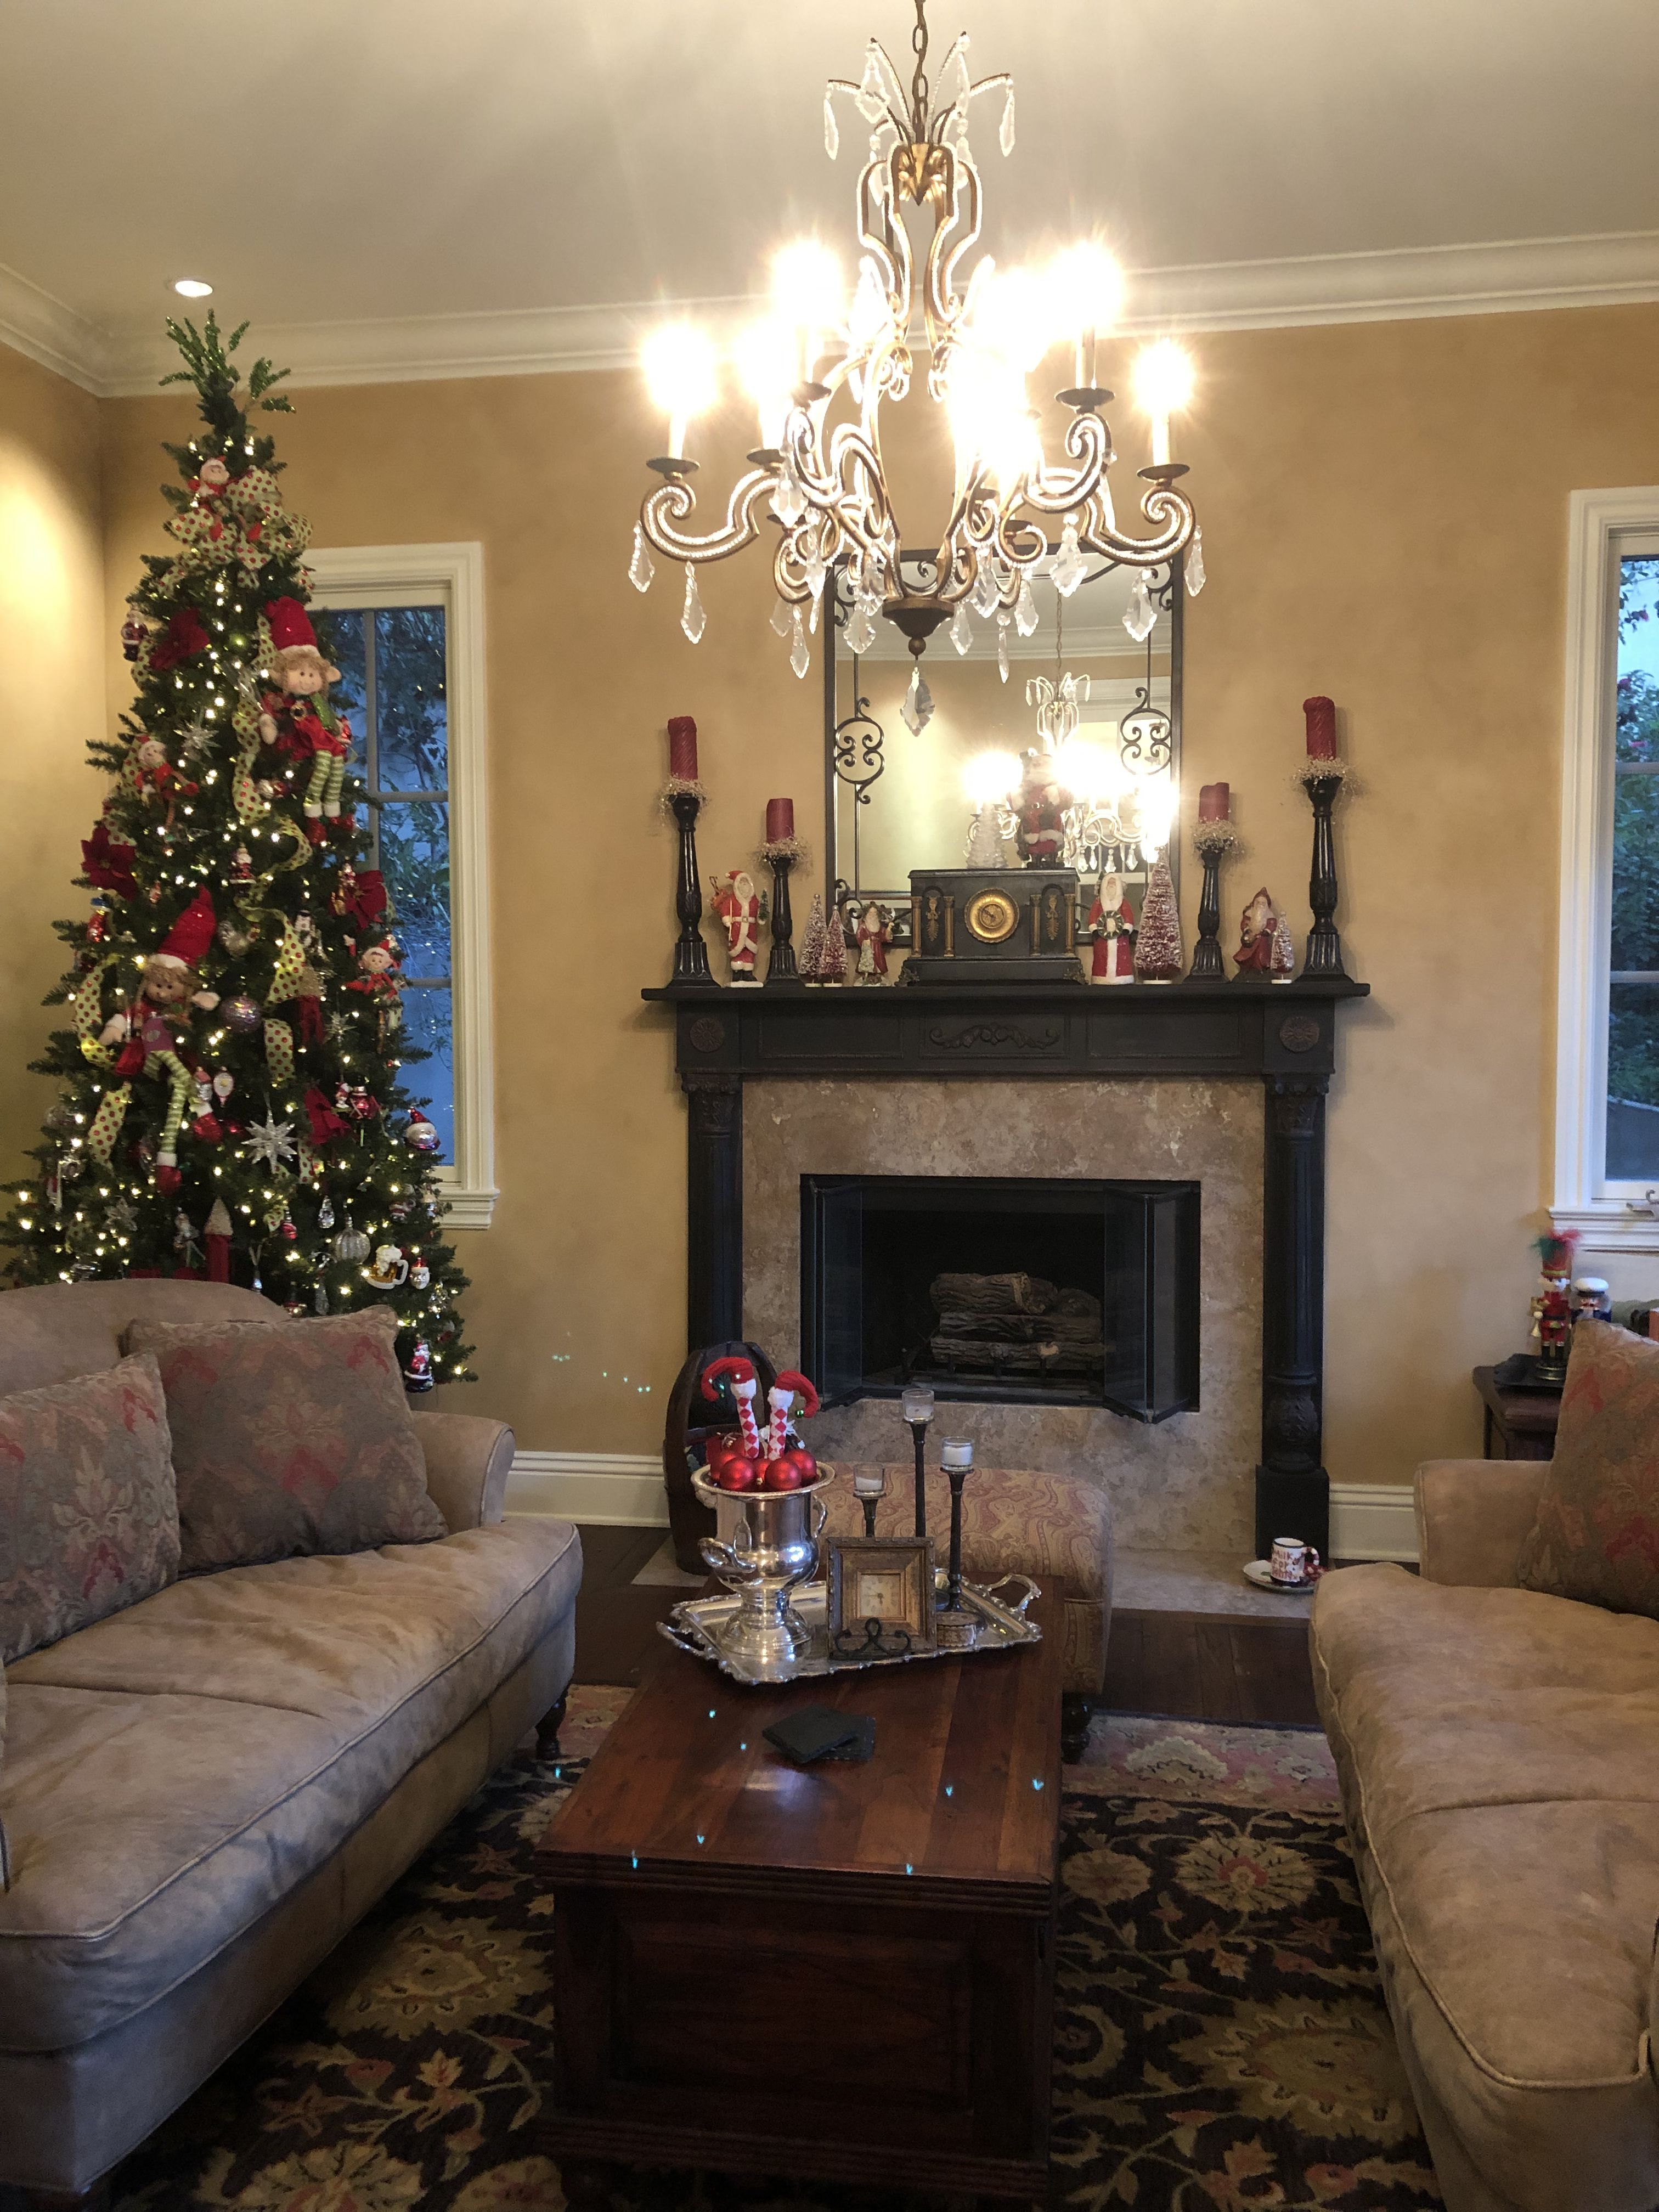 Pin by Tanya Collins on Christmas decorating Pinterest